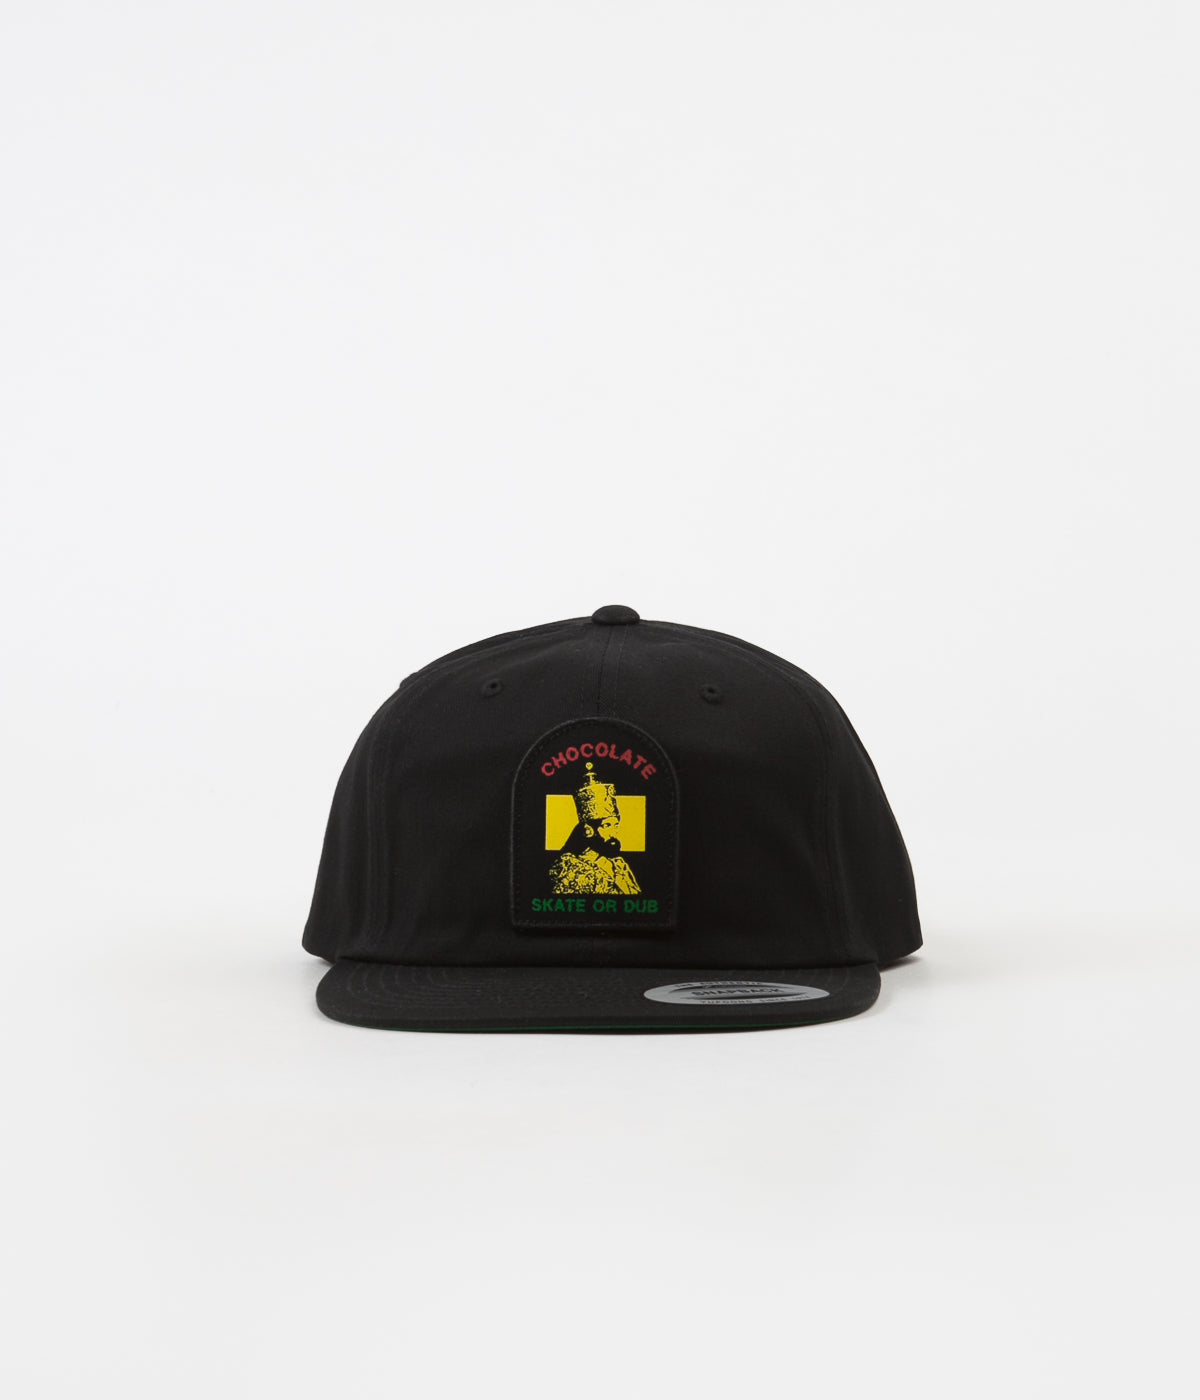 Chocolate Skate Or Dub Snapback Cap - Black